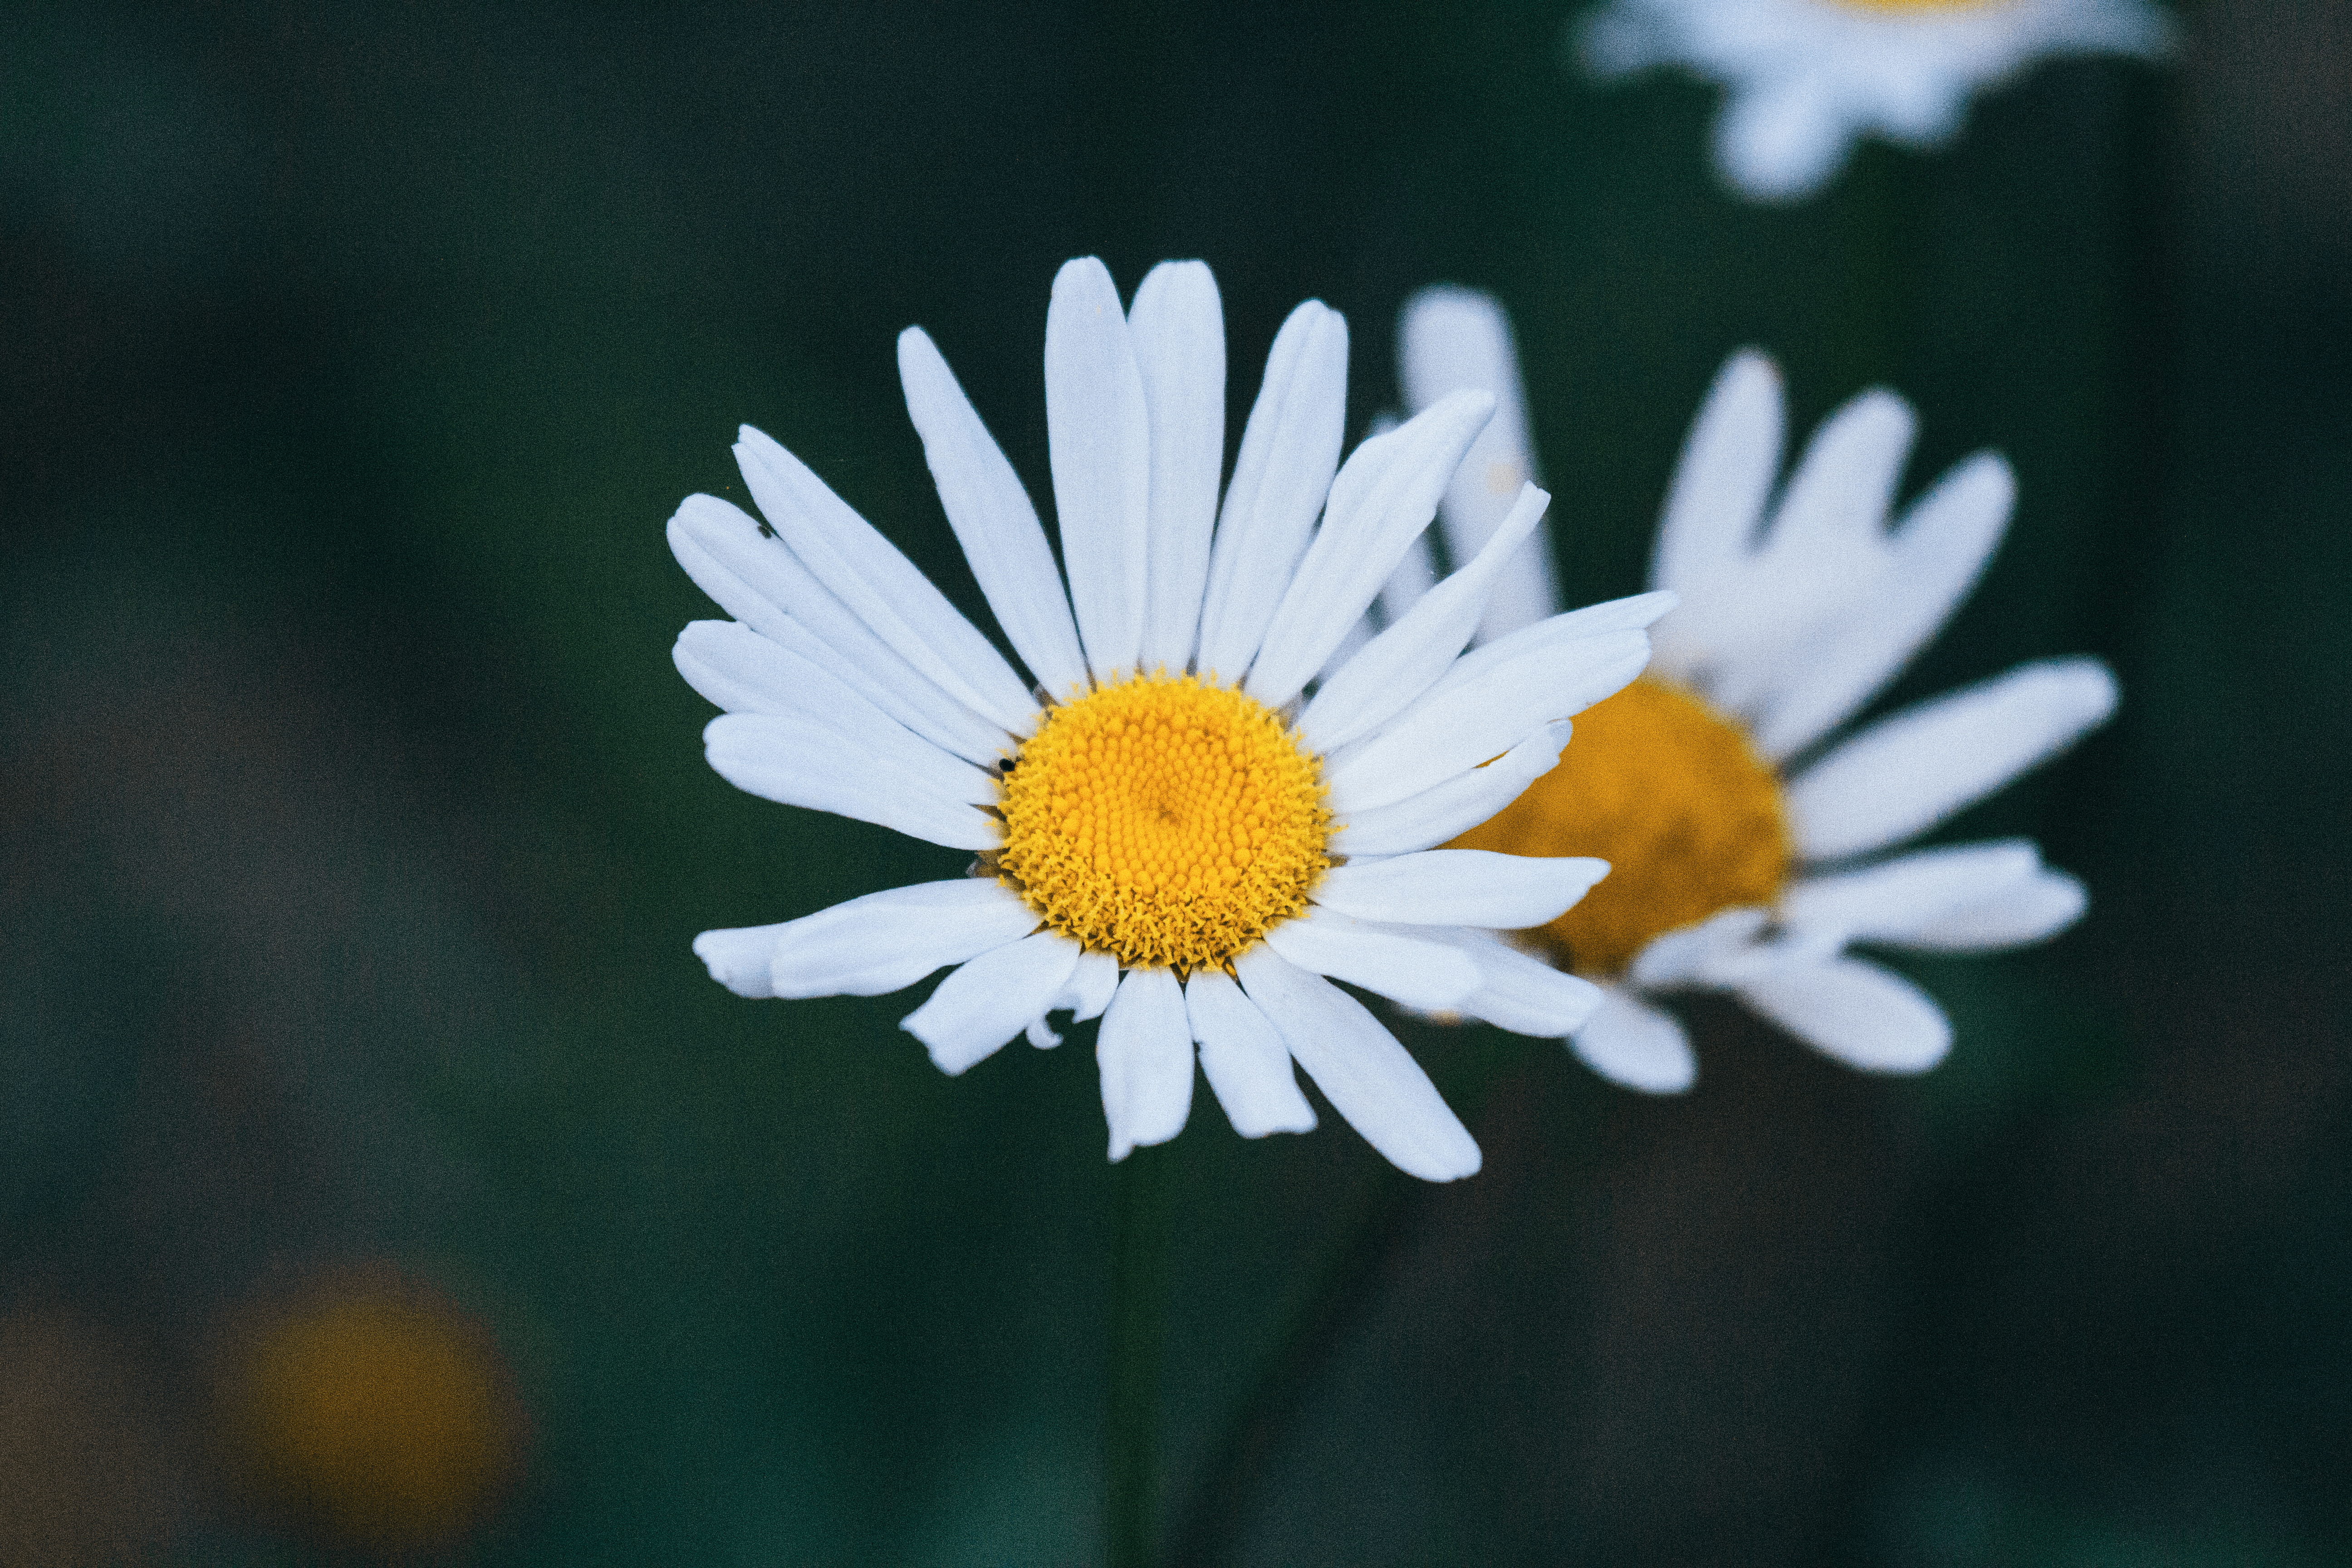 Daisies bloom in the wild